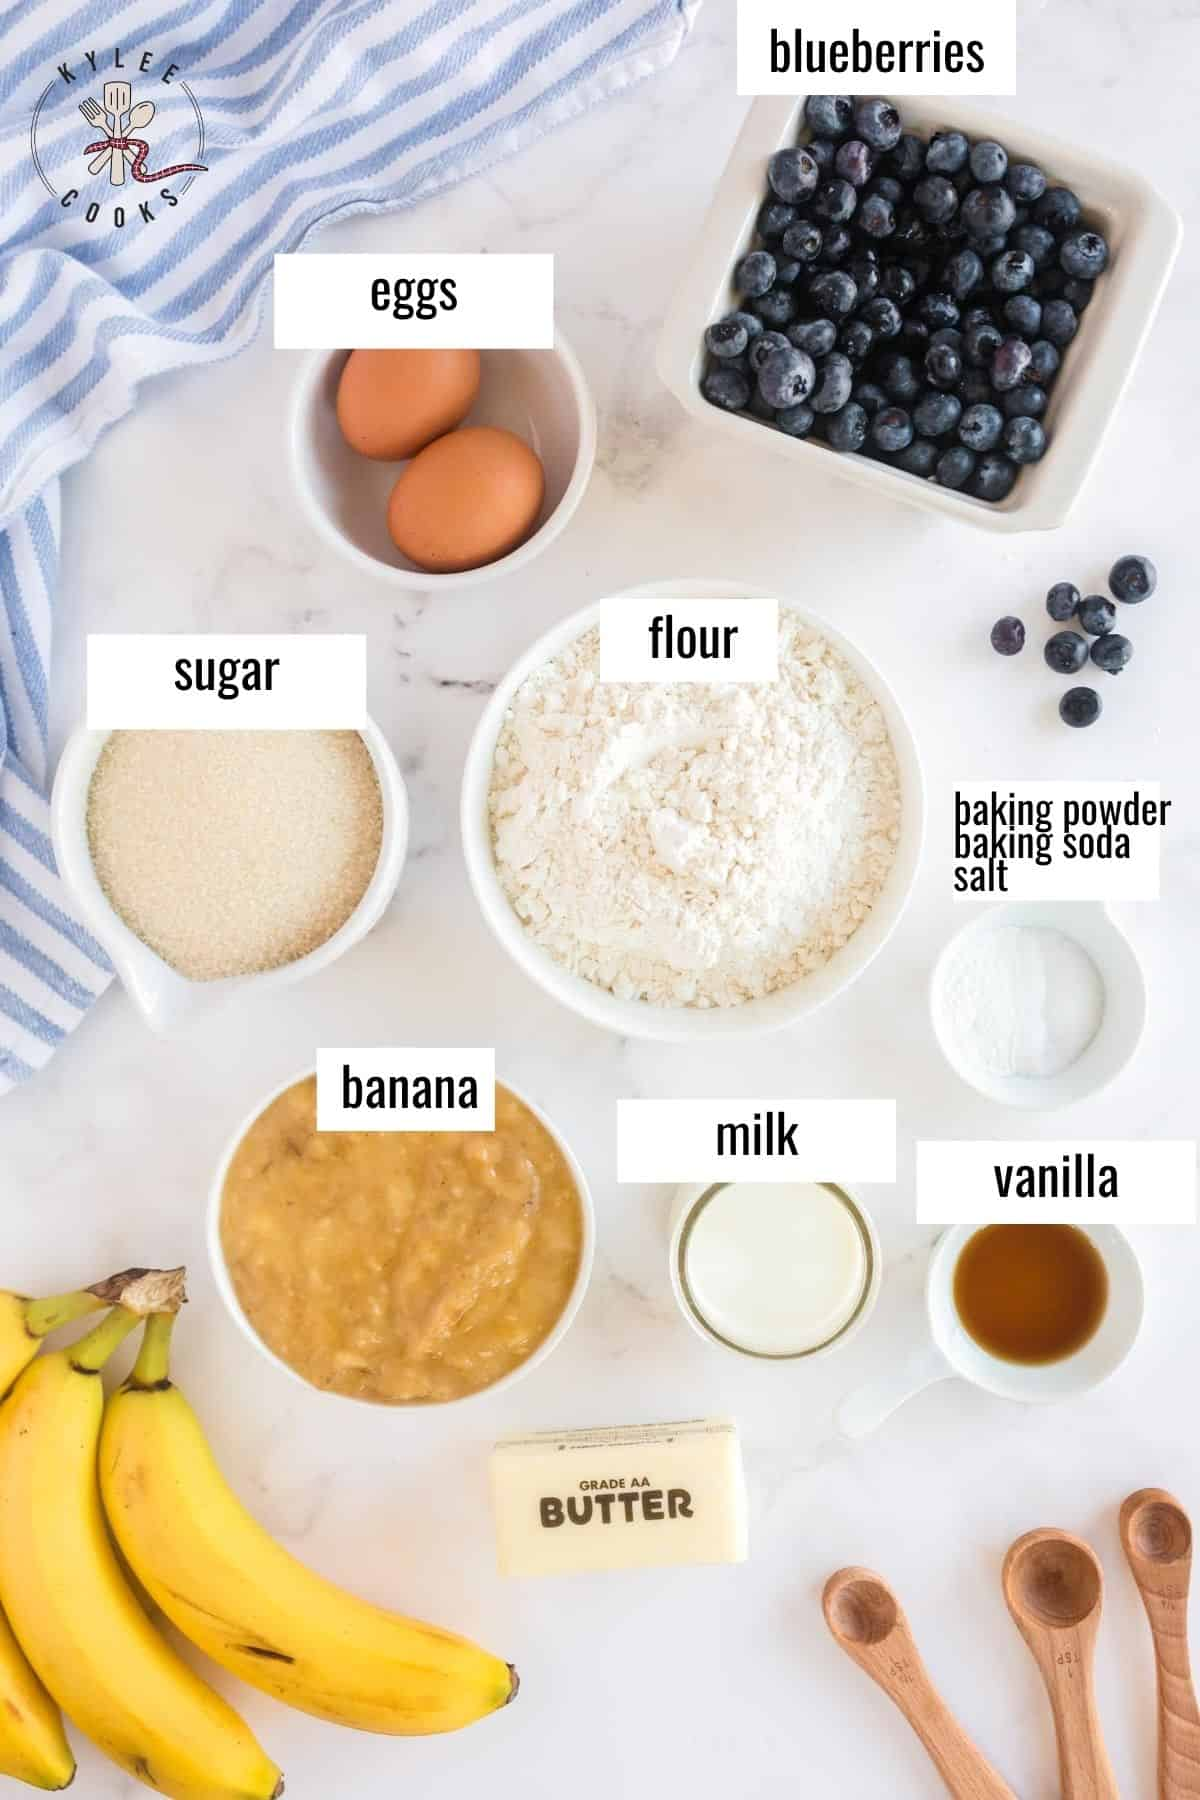 ingredients to make blueberry banana bread laid out and labeled